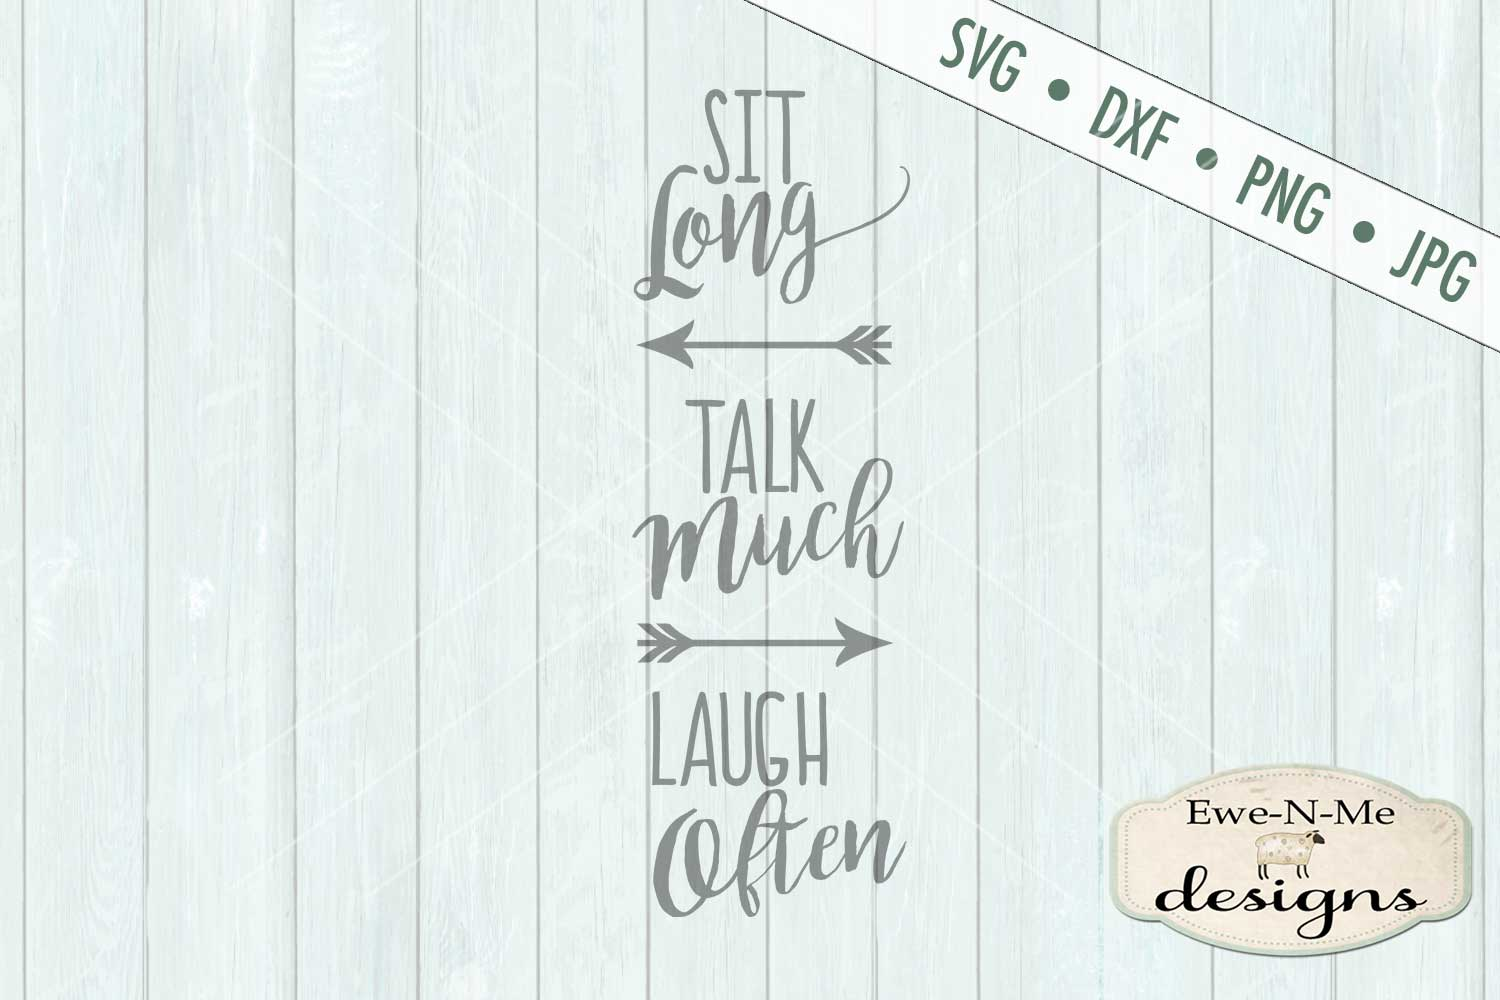 Sit Long Talk Much Laugh Often SVG DXF File example image 2